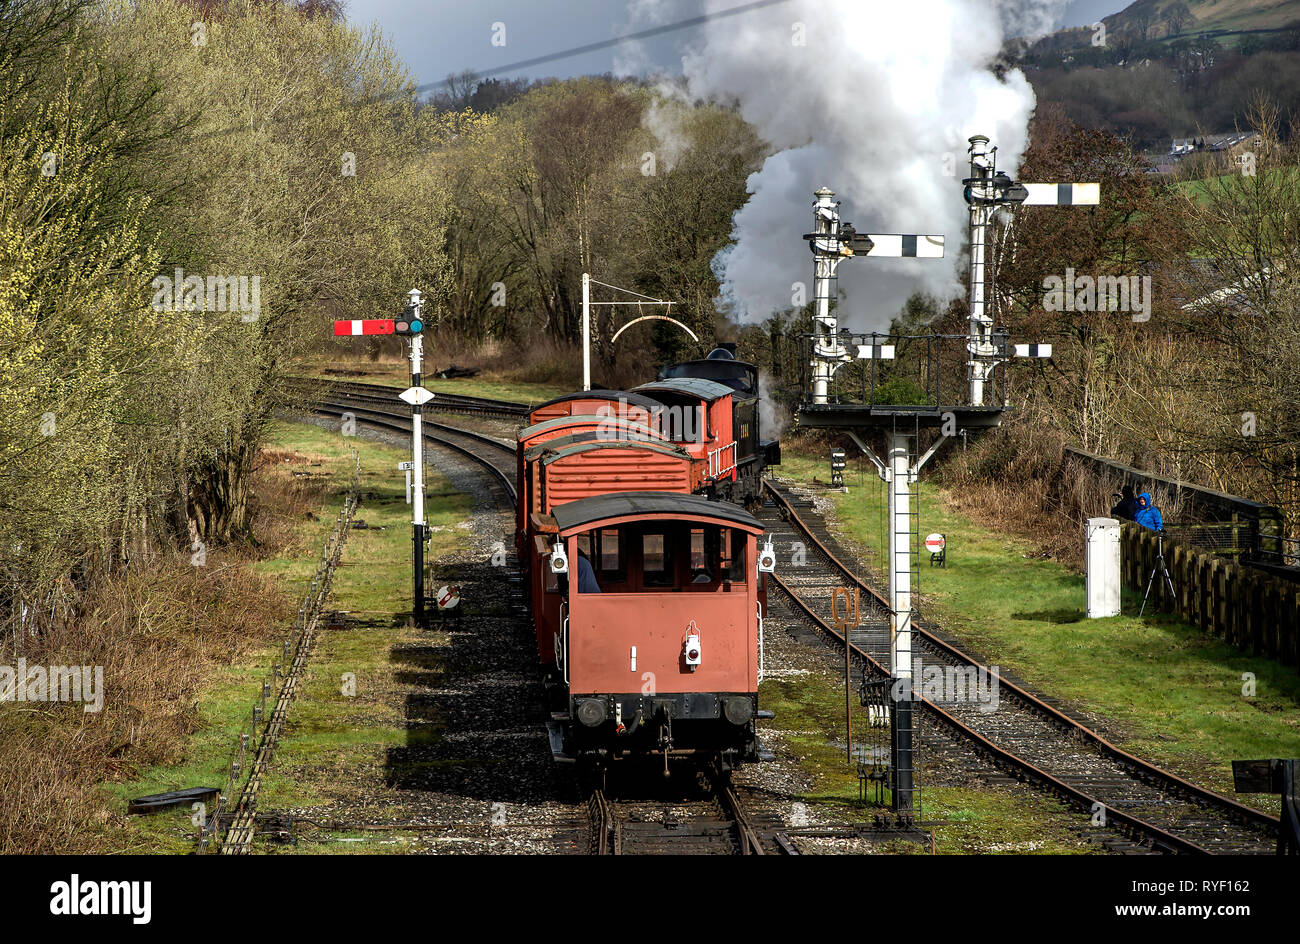 Lancashire, UK, Sunday March 10, 2019. The annual East Lancashire Railway Spring Steam Gala attracted bumper crowds of rail enthusiasts from all over  Stock Photo